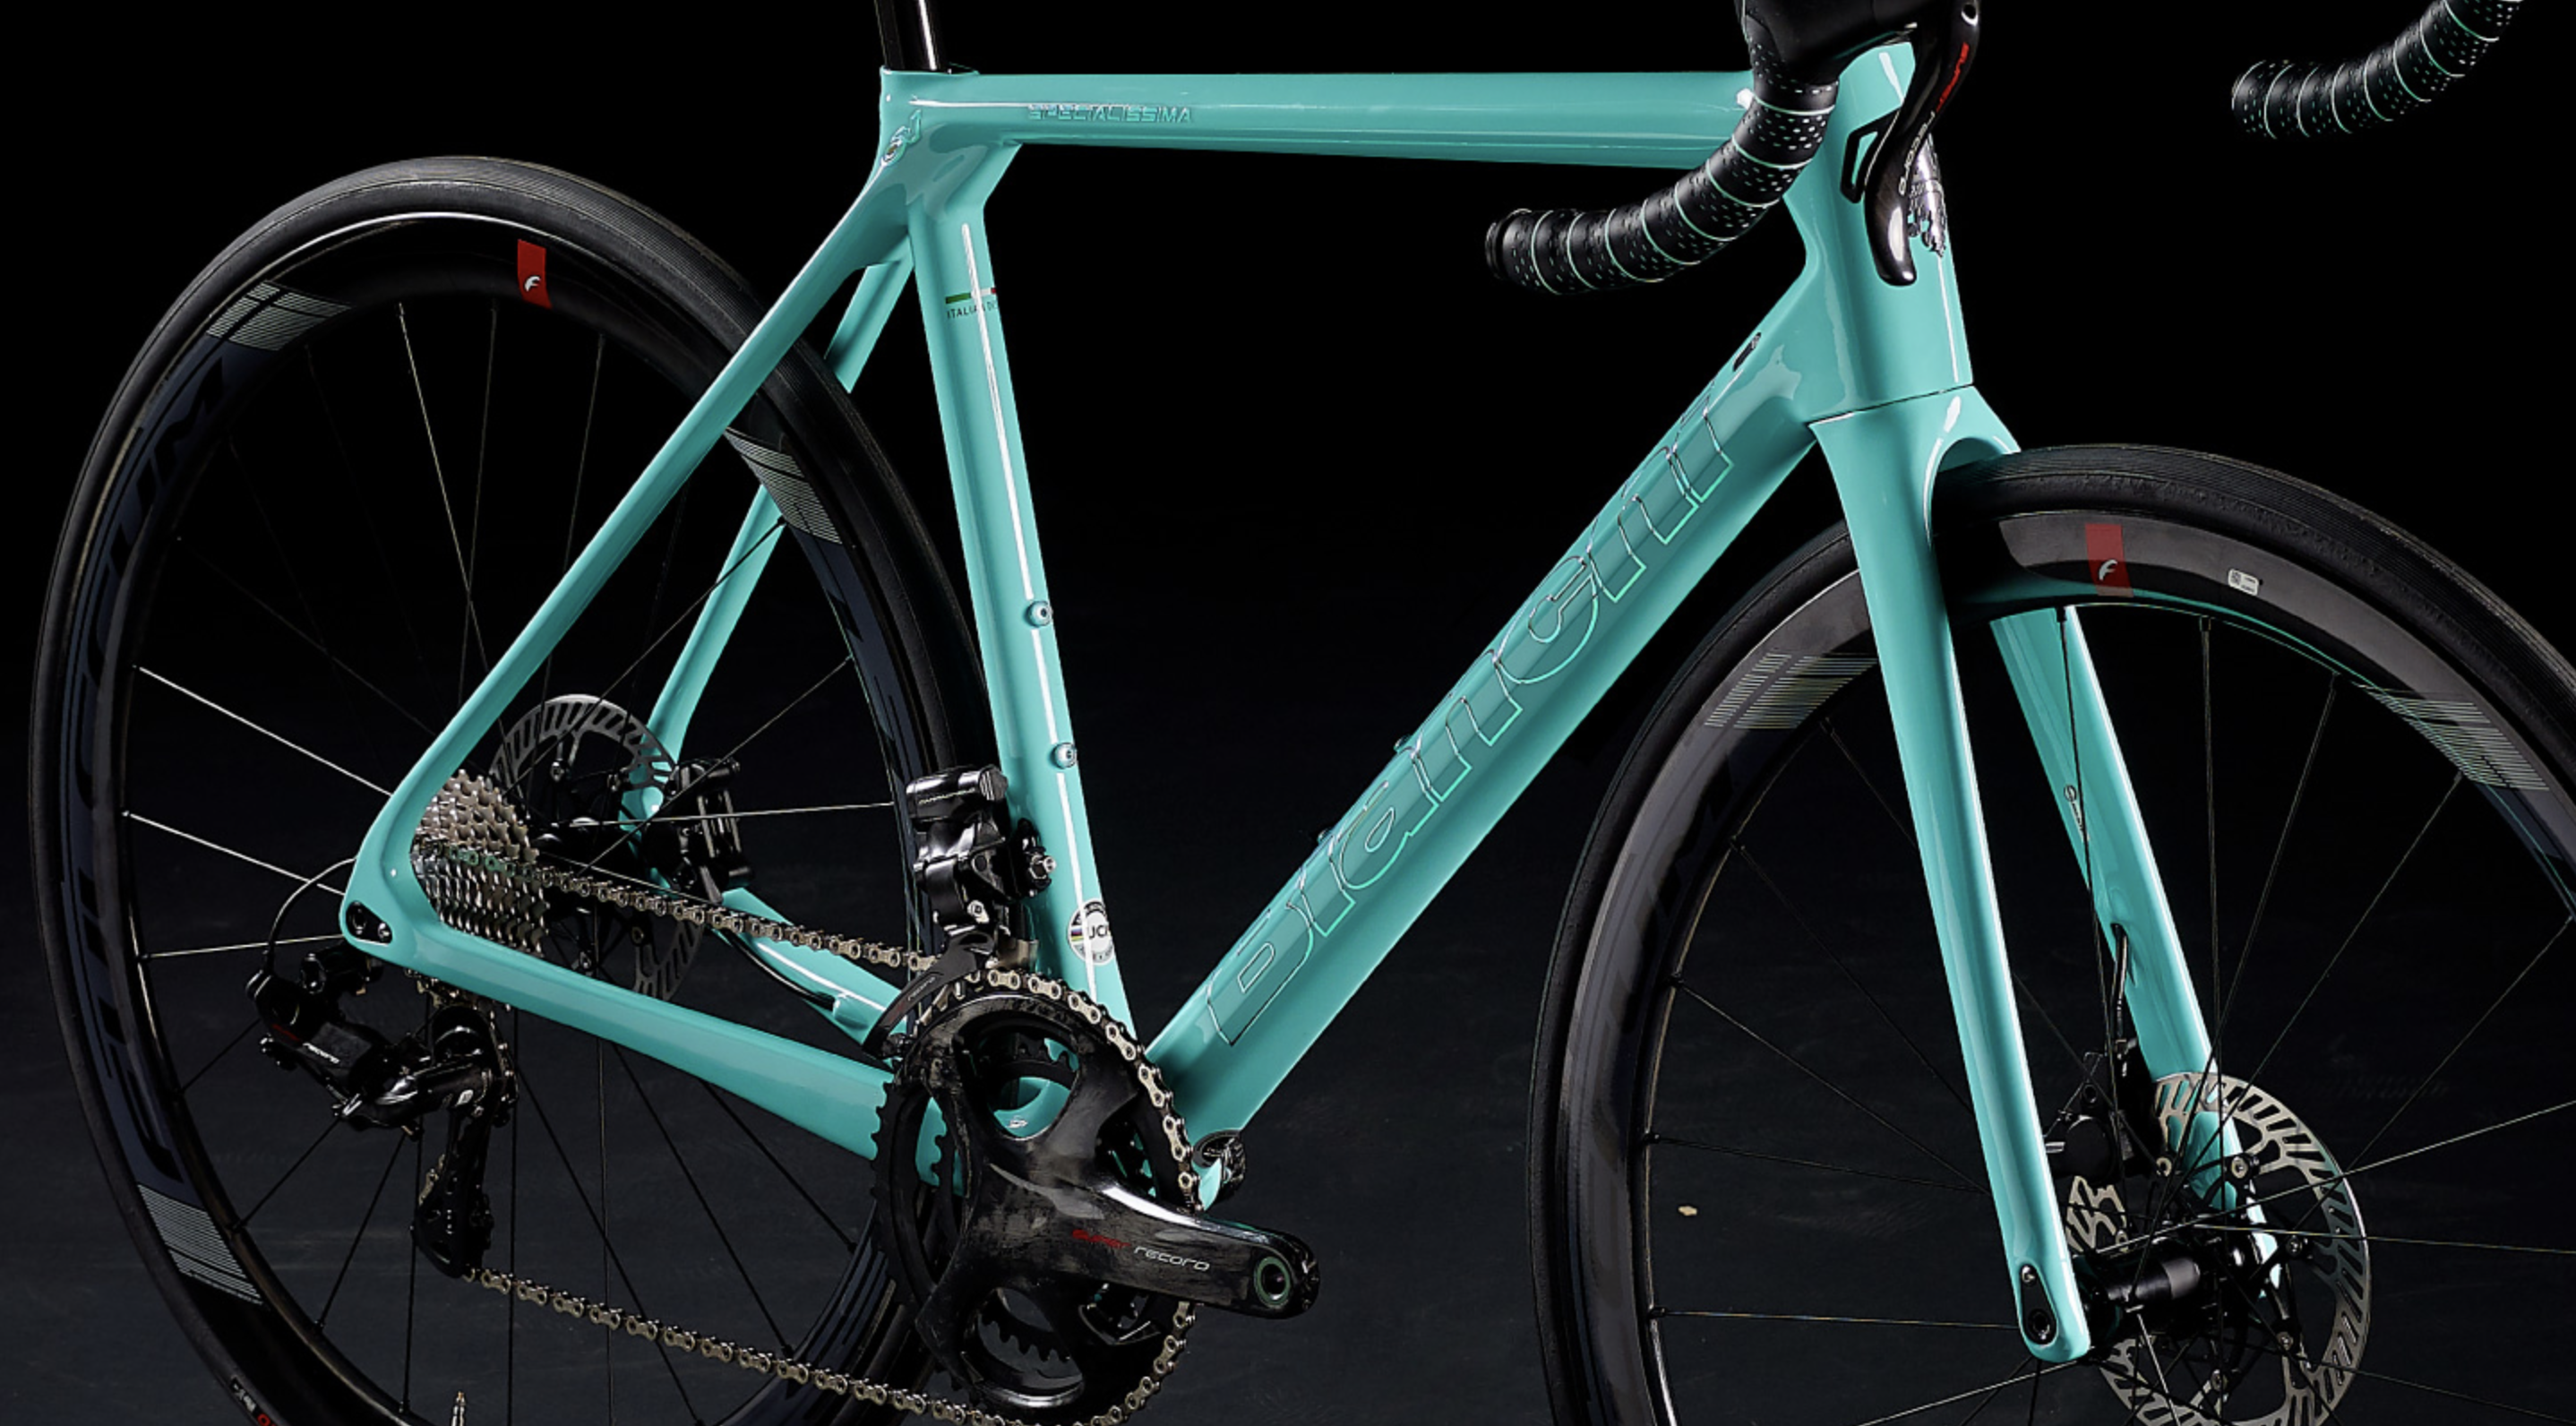 New Specialissima Disc Celeste